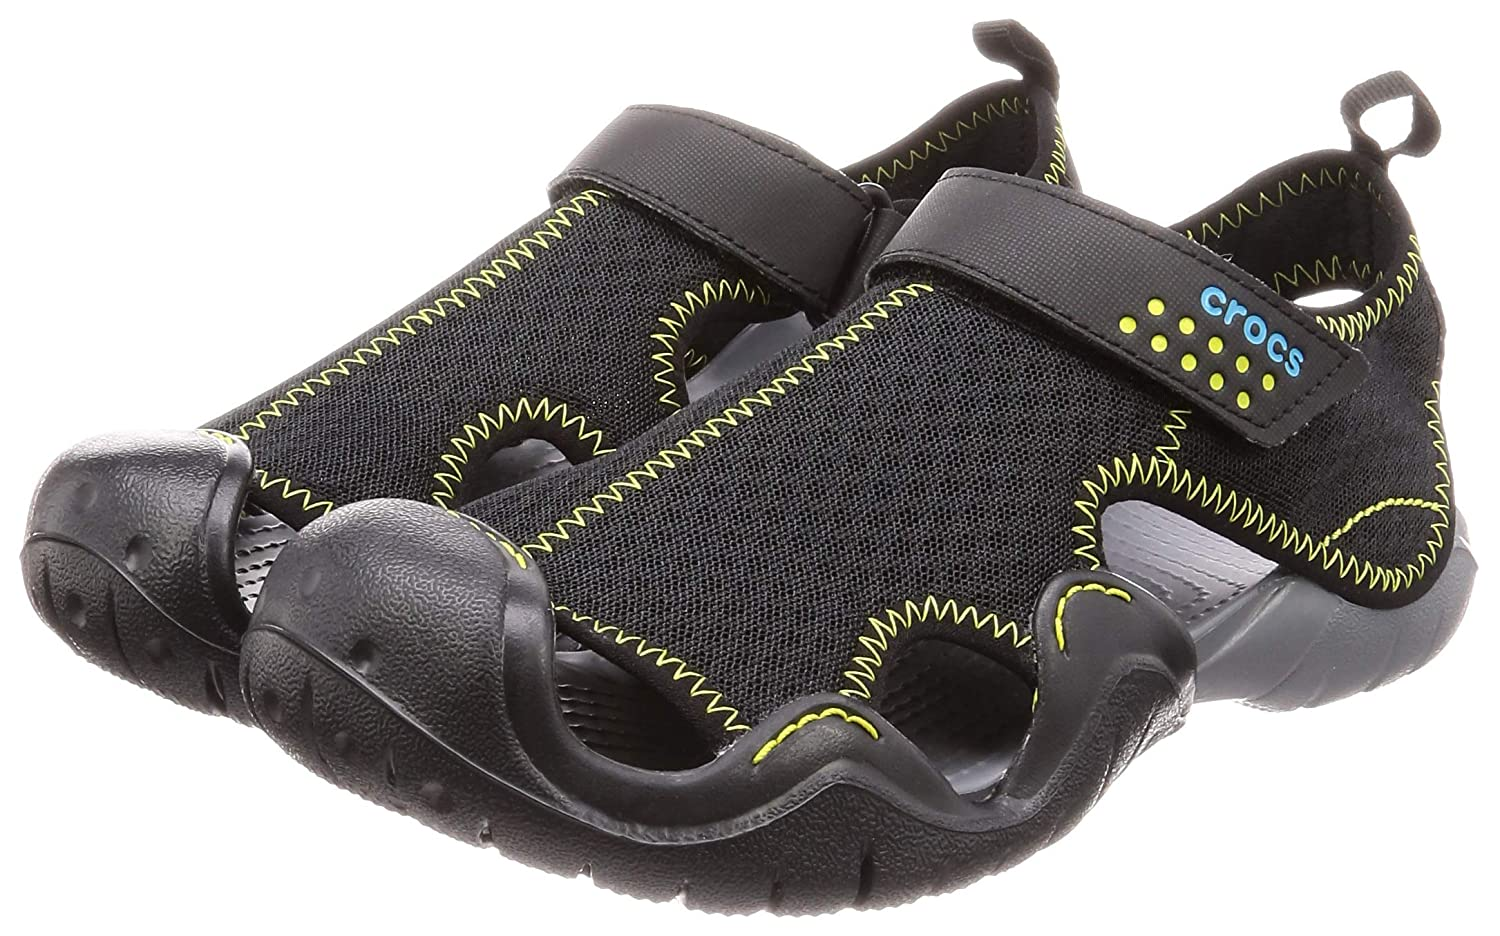 25caa0e1a46 Crocs Men Swiftwater Sandals  Amazon.co.uk  Shoes   Bags